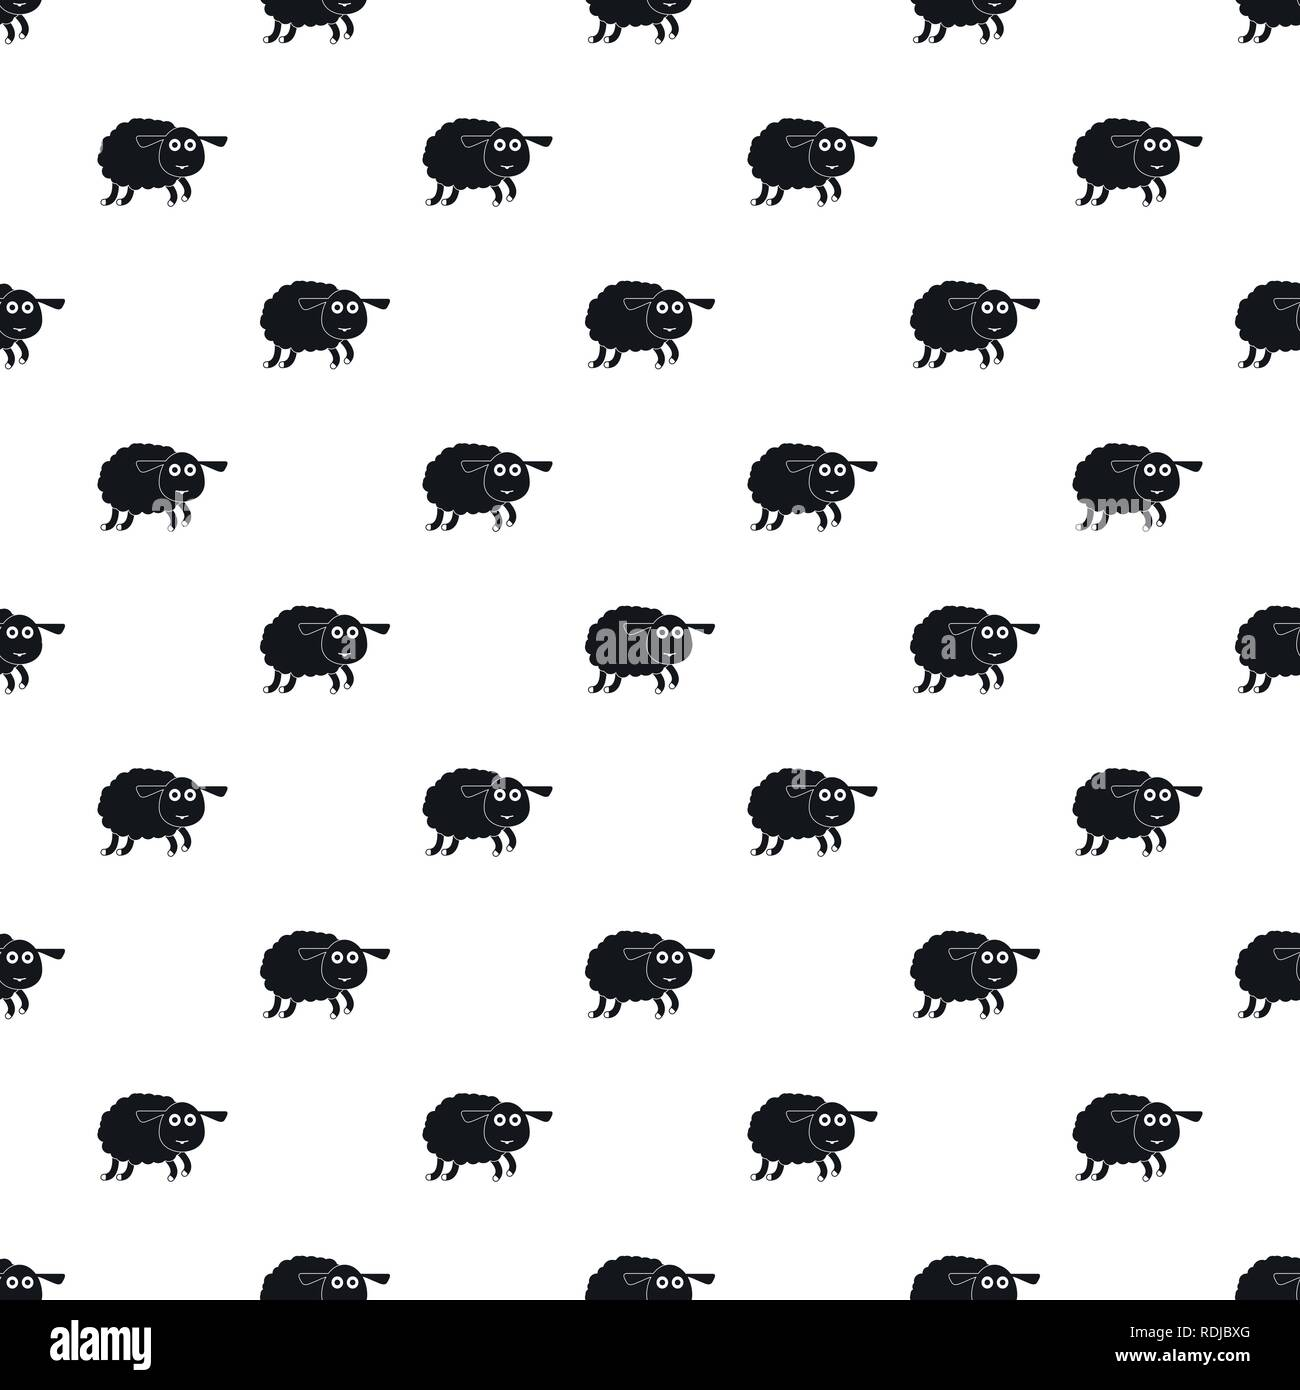 Sheep pattern seamless vector repeat geometric for any web design - Stock Vector